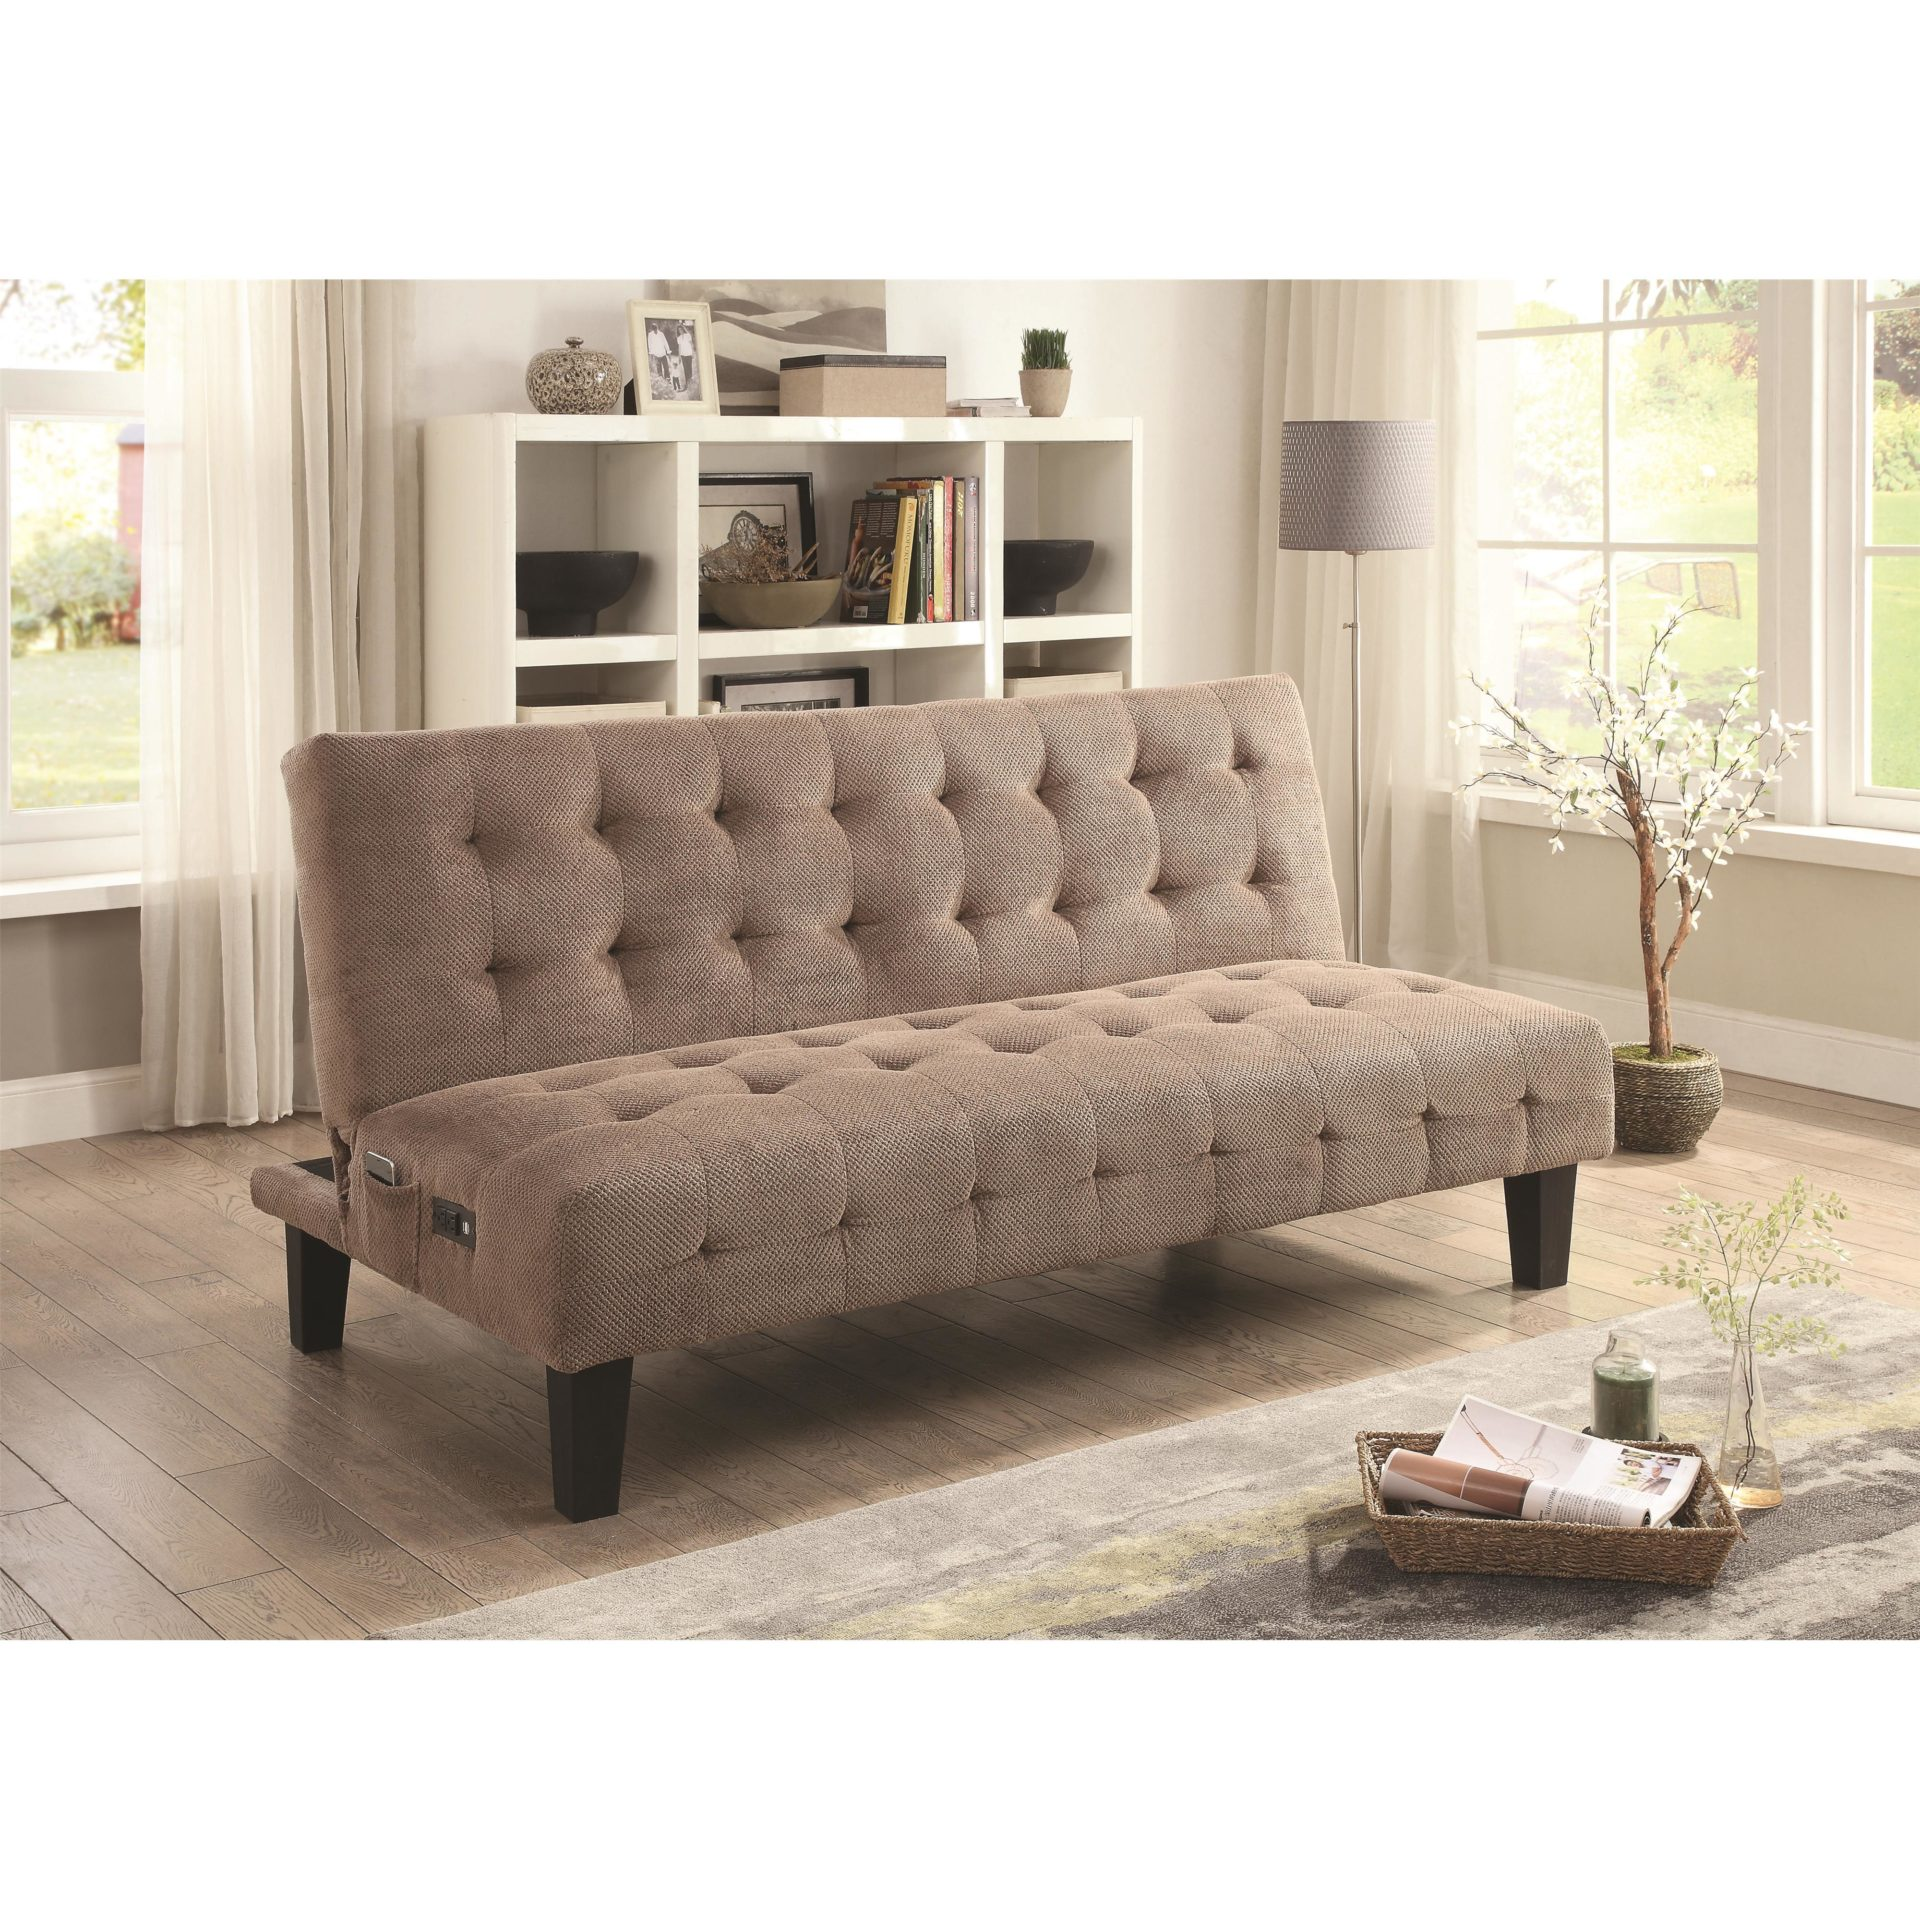 Adjustable Futon Sofa Bed With Usb And Power Ports Taupe Futon World